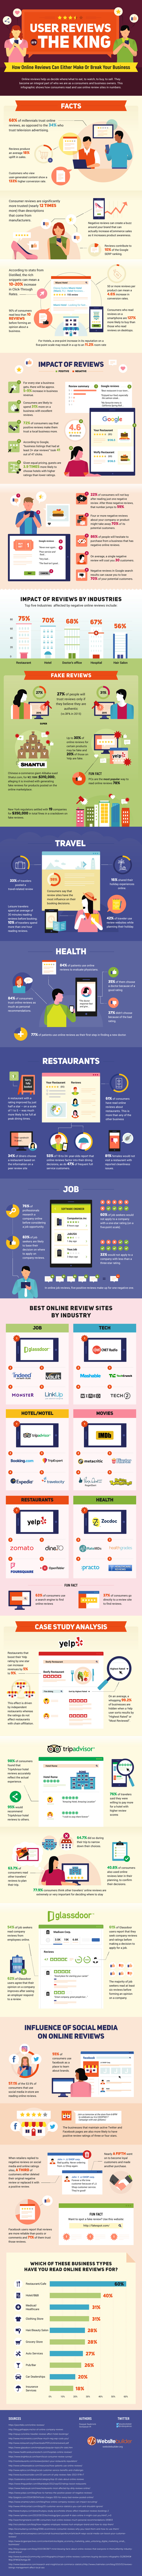 How Online Reviews Can Make or Break Your Business [Infographic] | Social Media Today